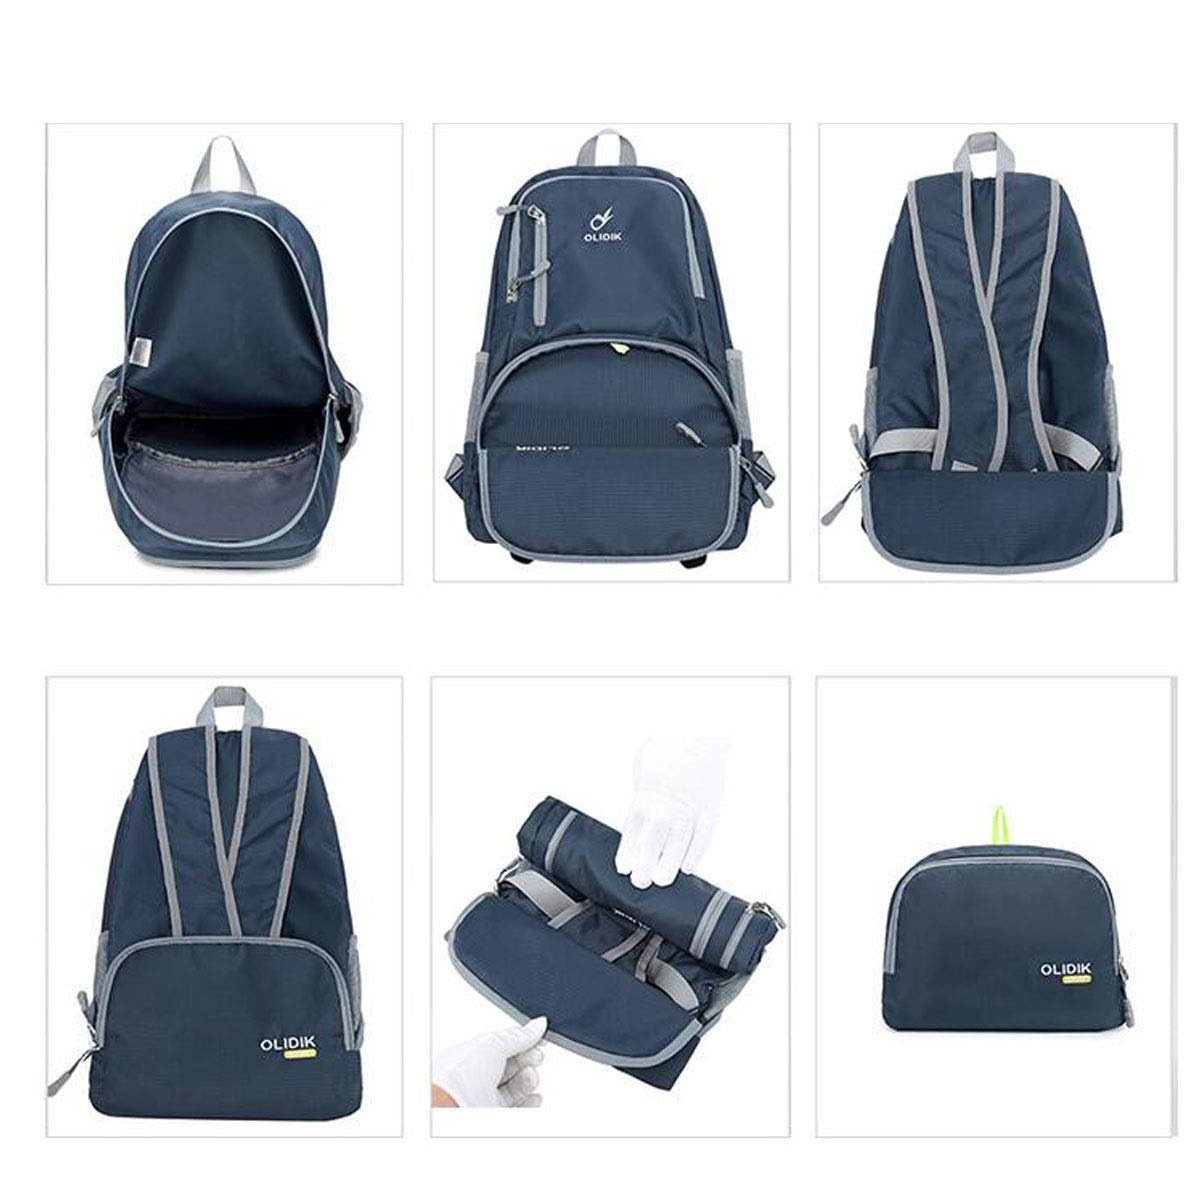 Chenjinxiang01 Outdoor Travel Large-Capacity Skin Pack Foldable Waterproof Travel Backpack Color : Red Black, Blue, Green, Pink, Purple, Red